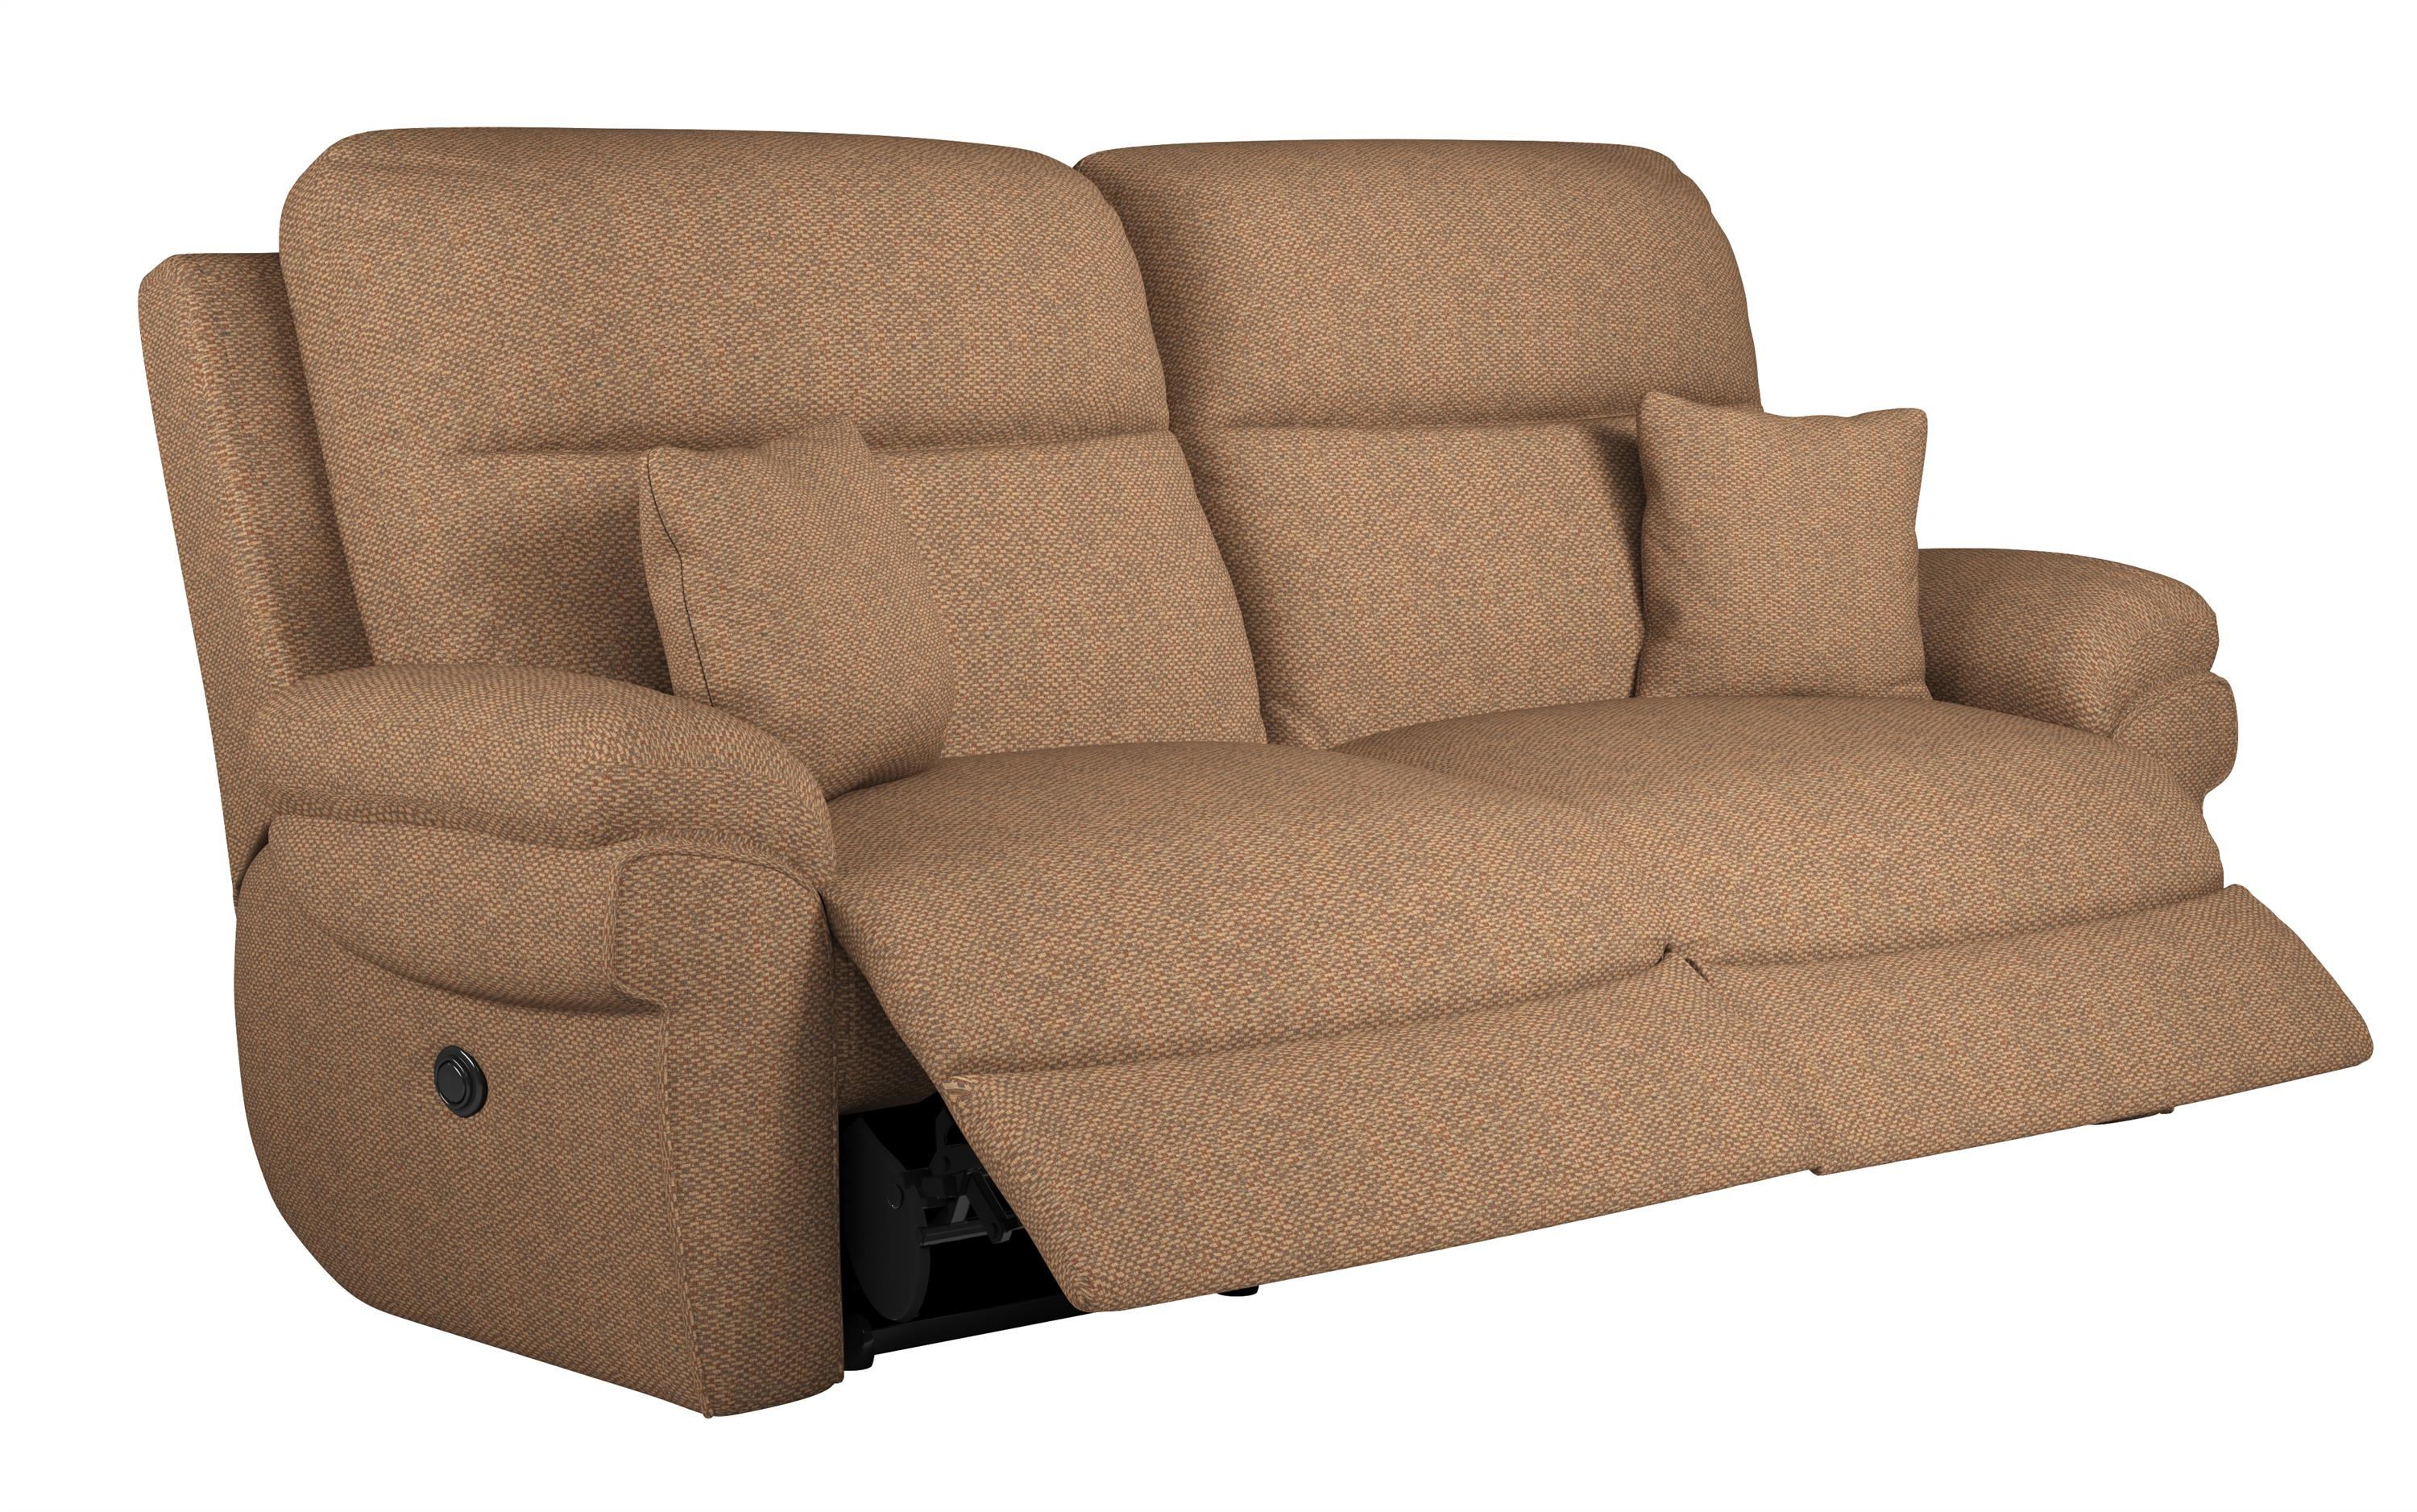 La-Z-Boy Tamla 3 Seater Power Recliner Sofa